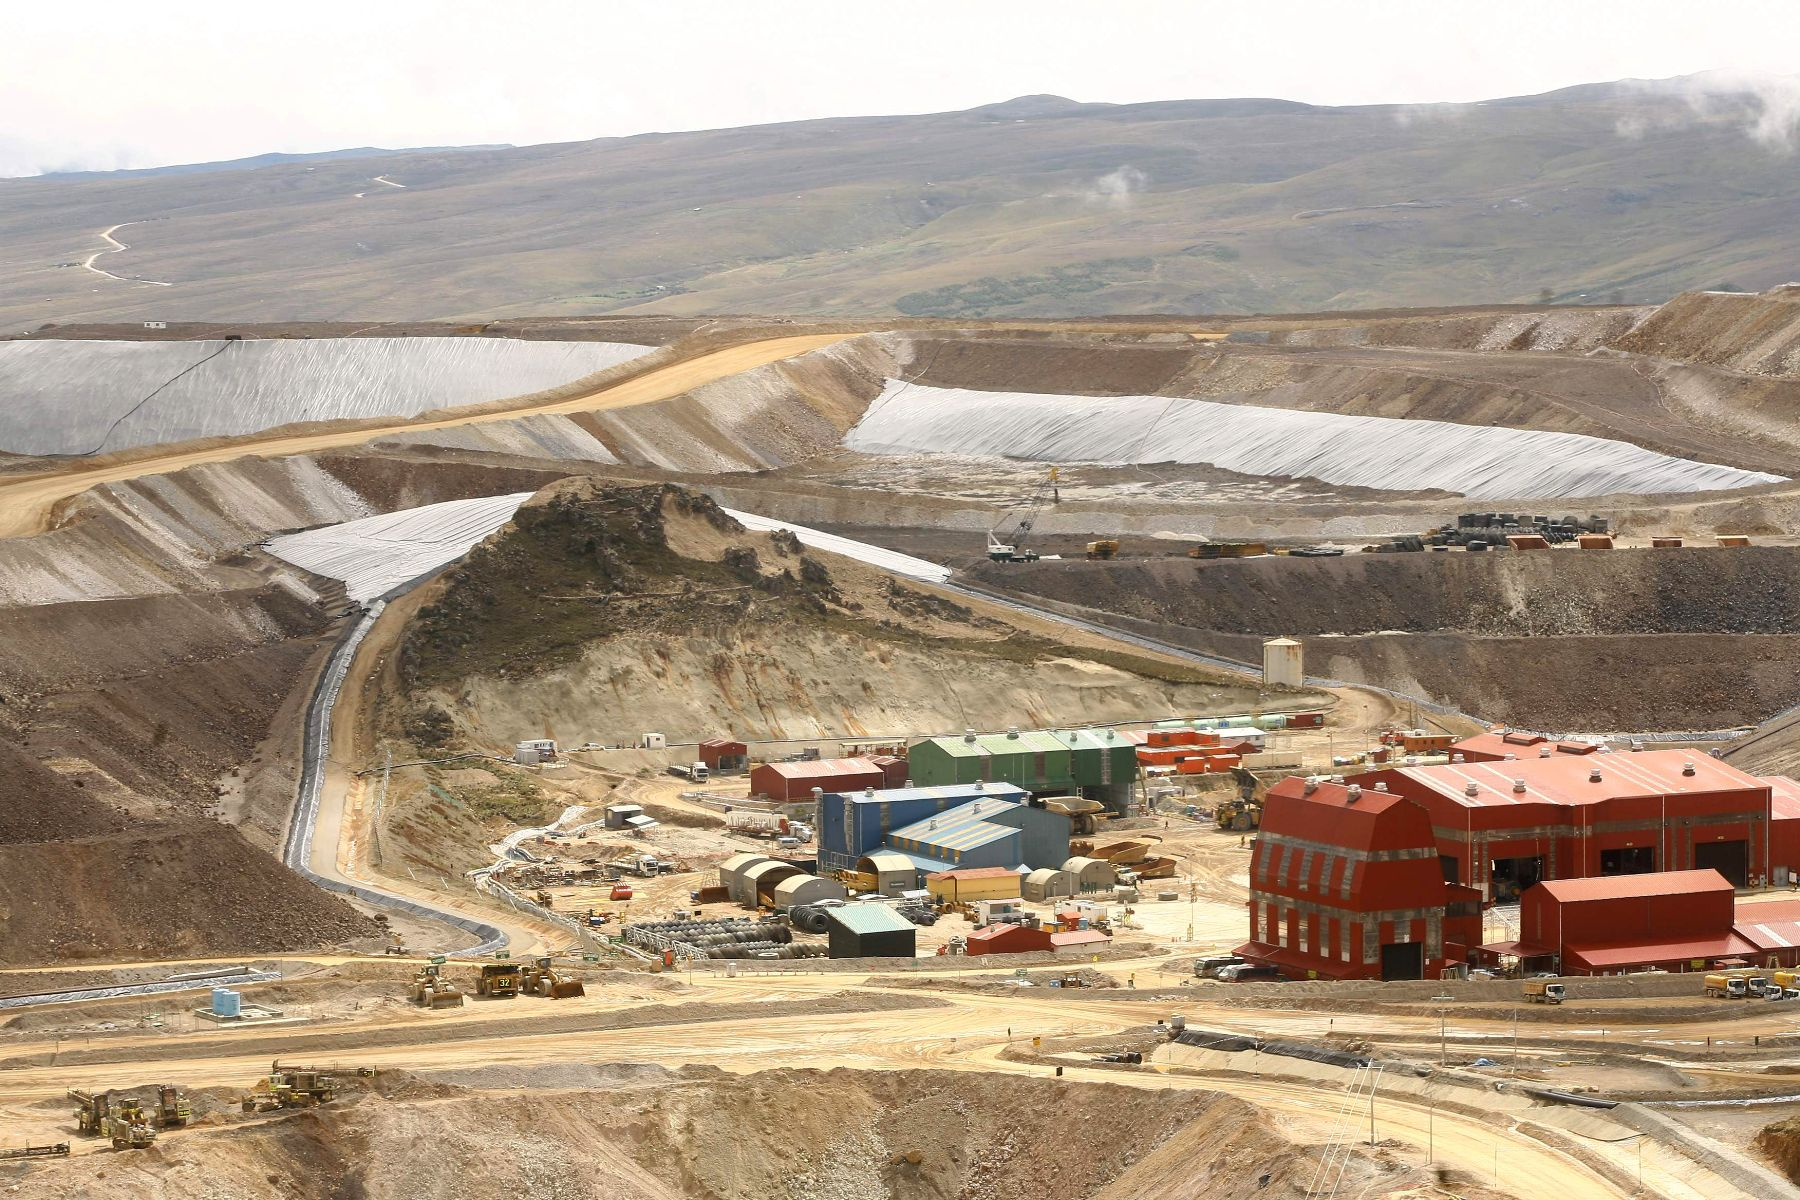 Yanacocha is owned by Denver-based Newmont Mining Company